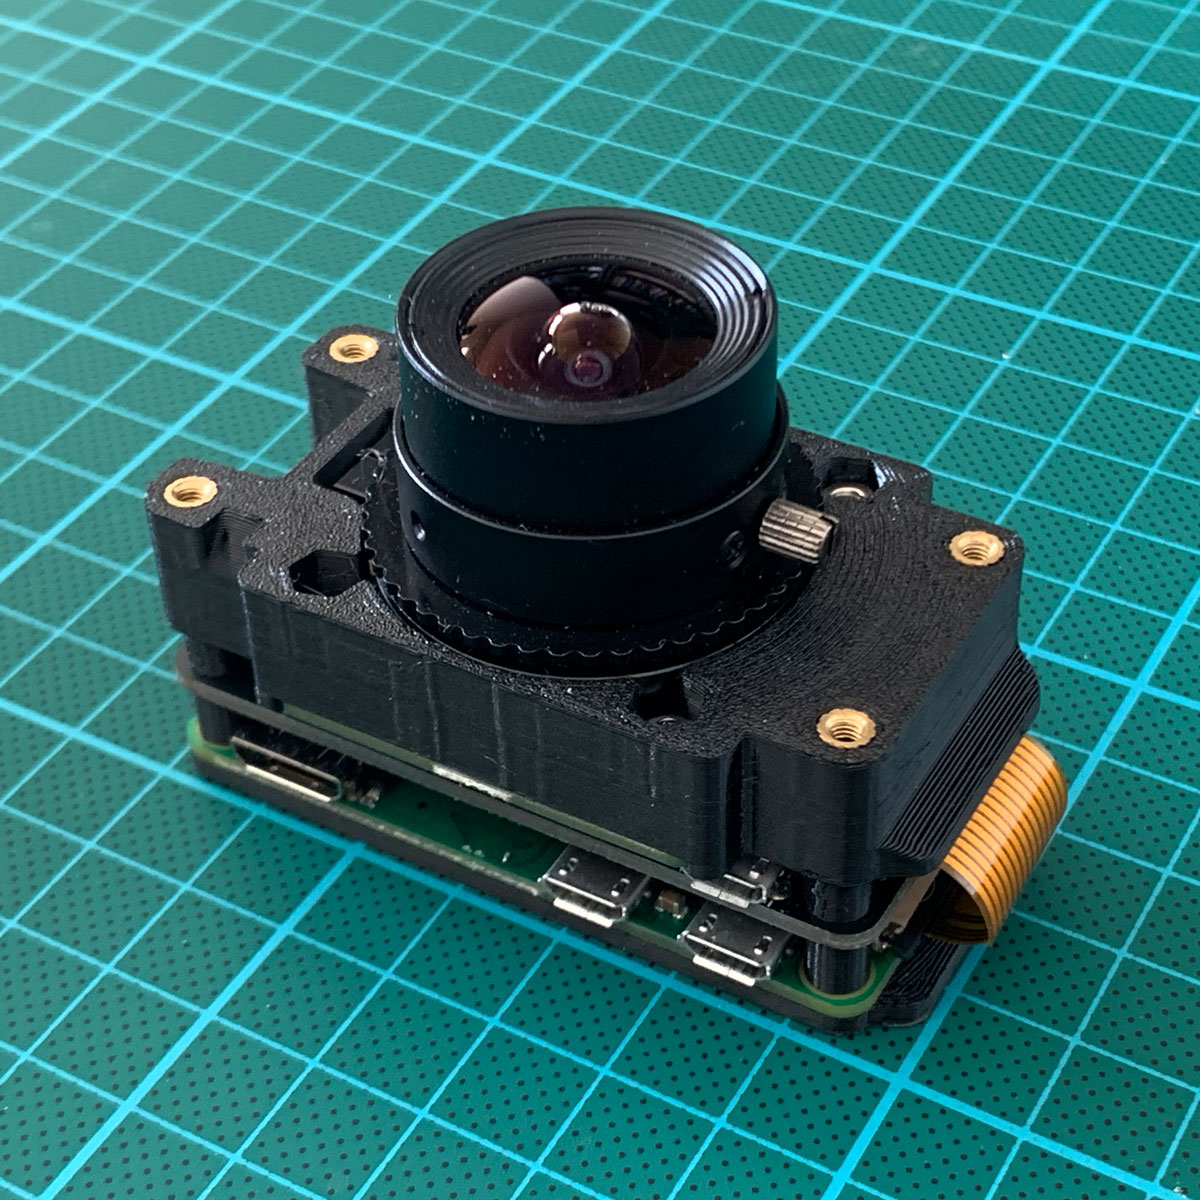 Arecont 4mm lens